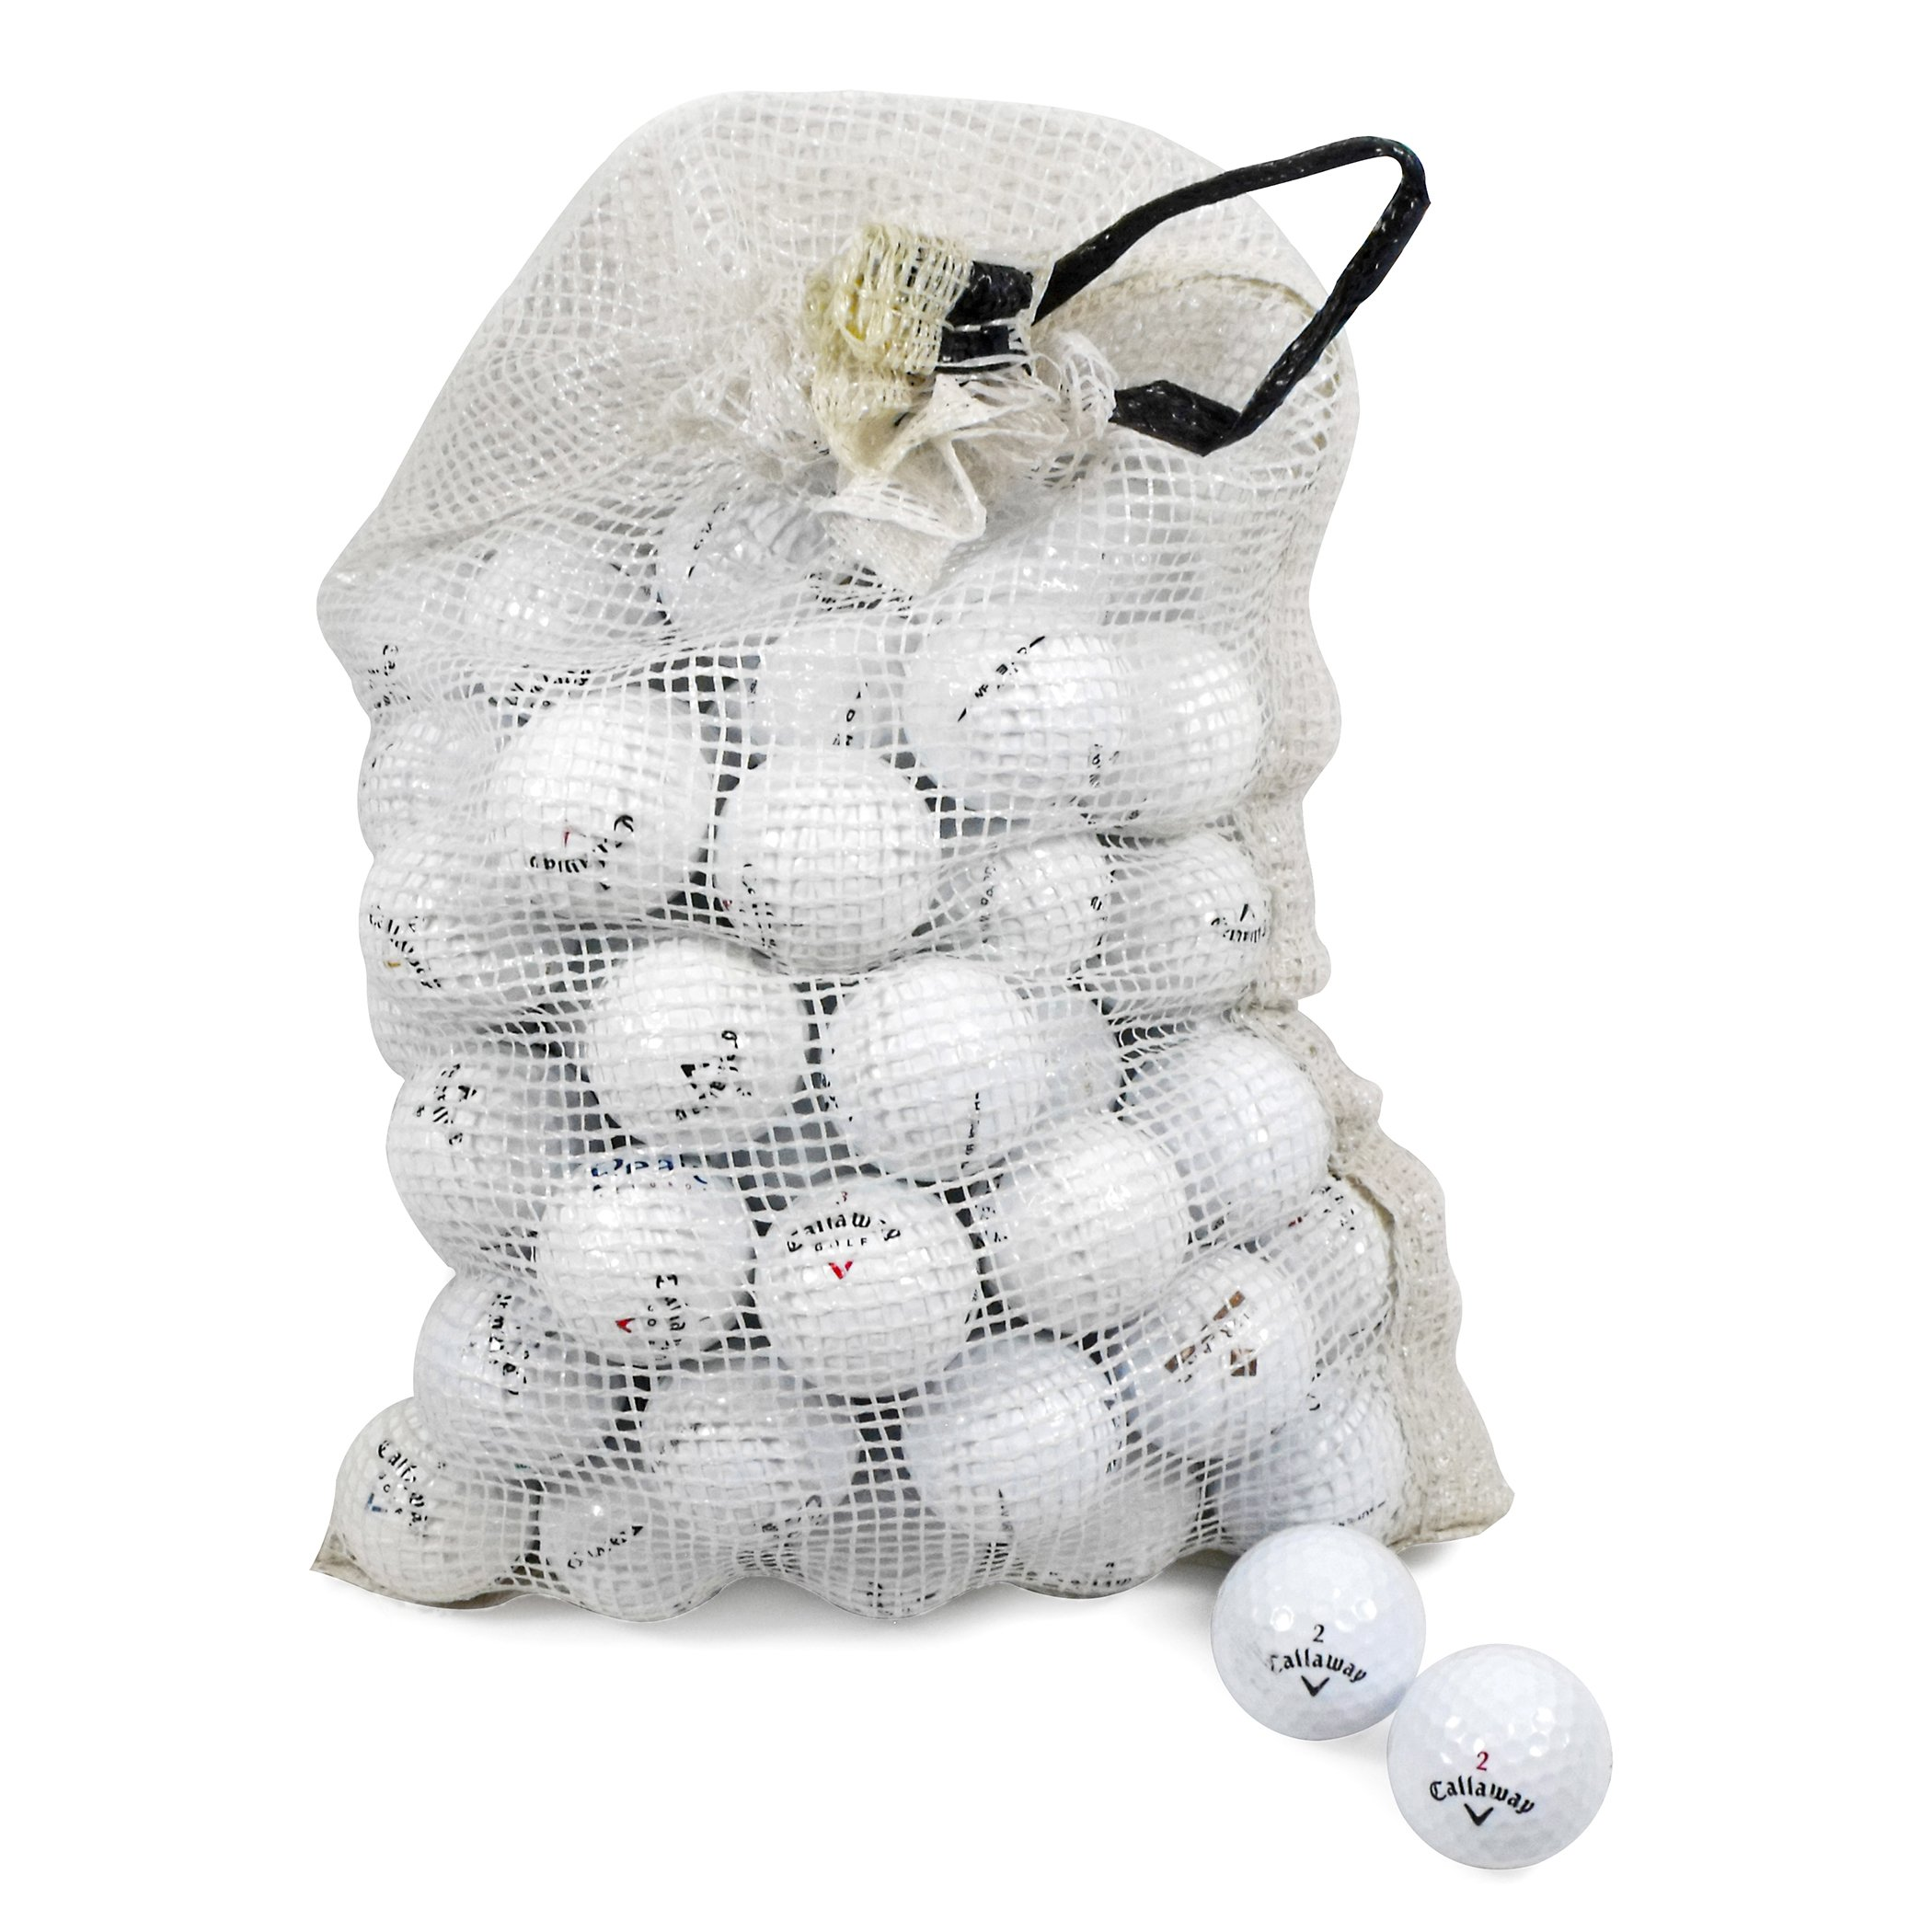 Callaway Assorted Models Recycled B/C Grade Golf Balls in Onion Mesh Bag (72-Piece) by Callaway